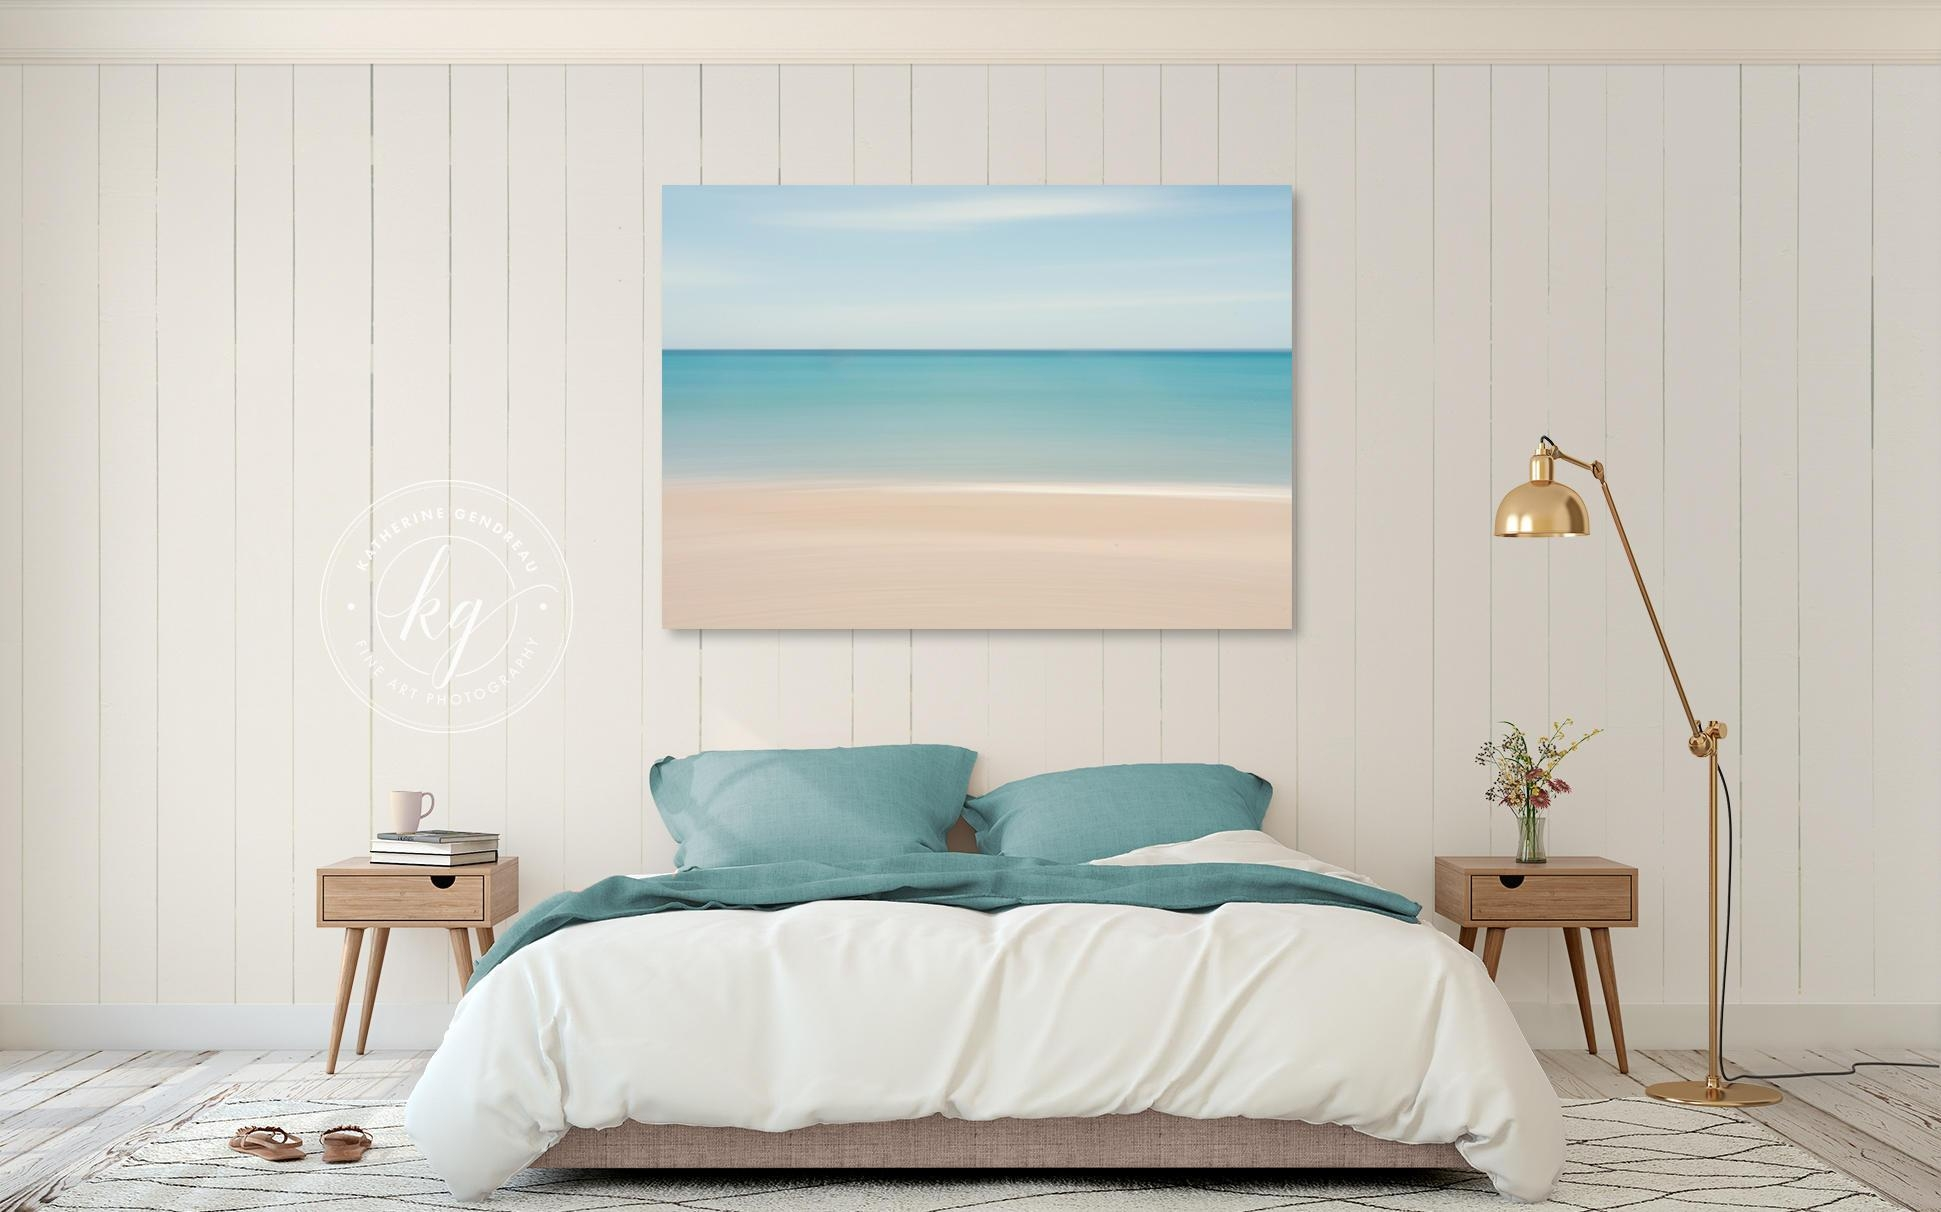 Beach Decor Canvas Gallery Wrap Abstract Ocean Photo Large Intended For Beach Wall Art For Bedroom (Image 3 of 20)